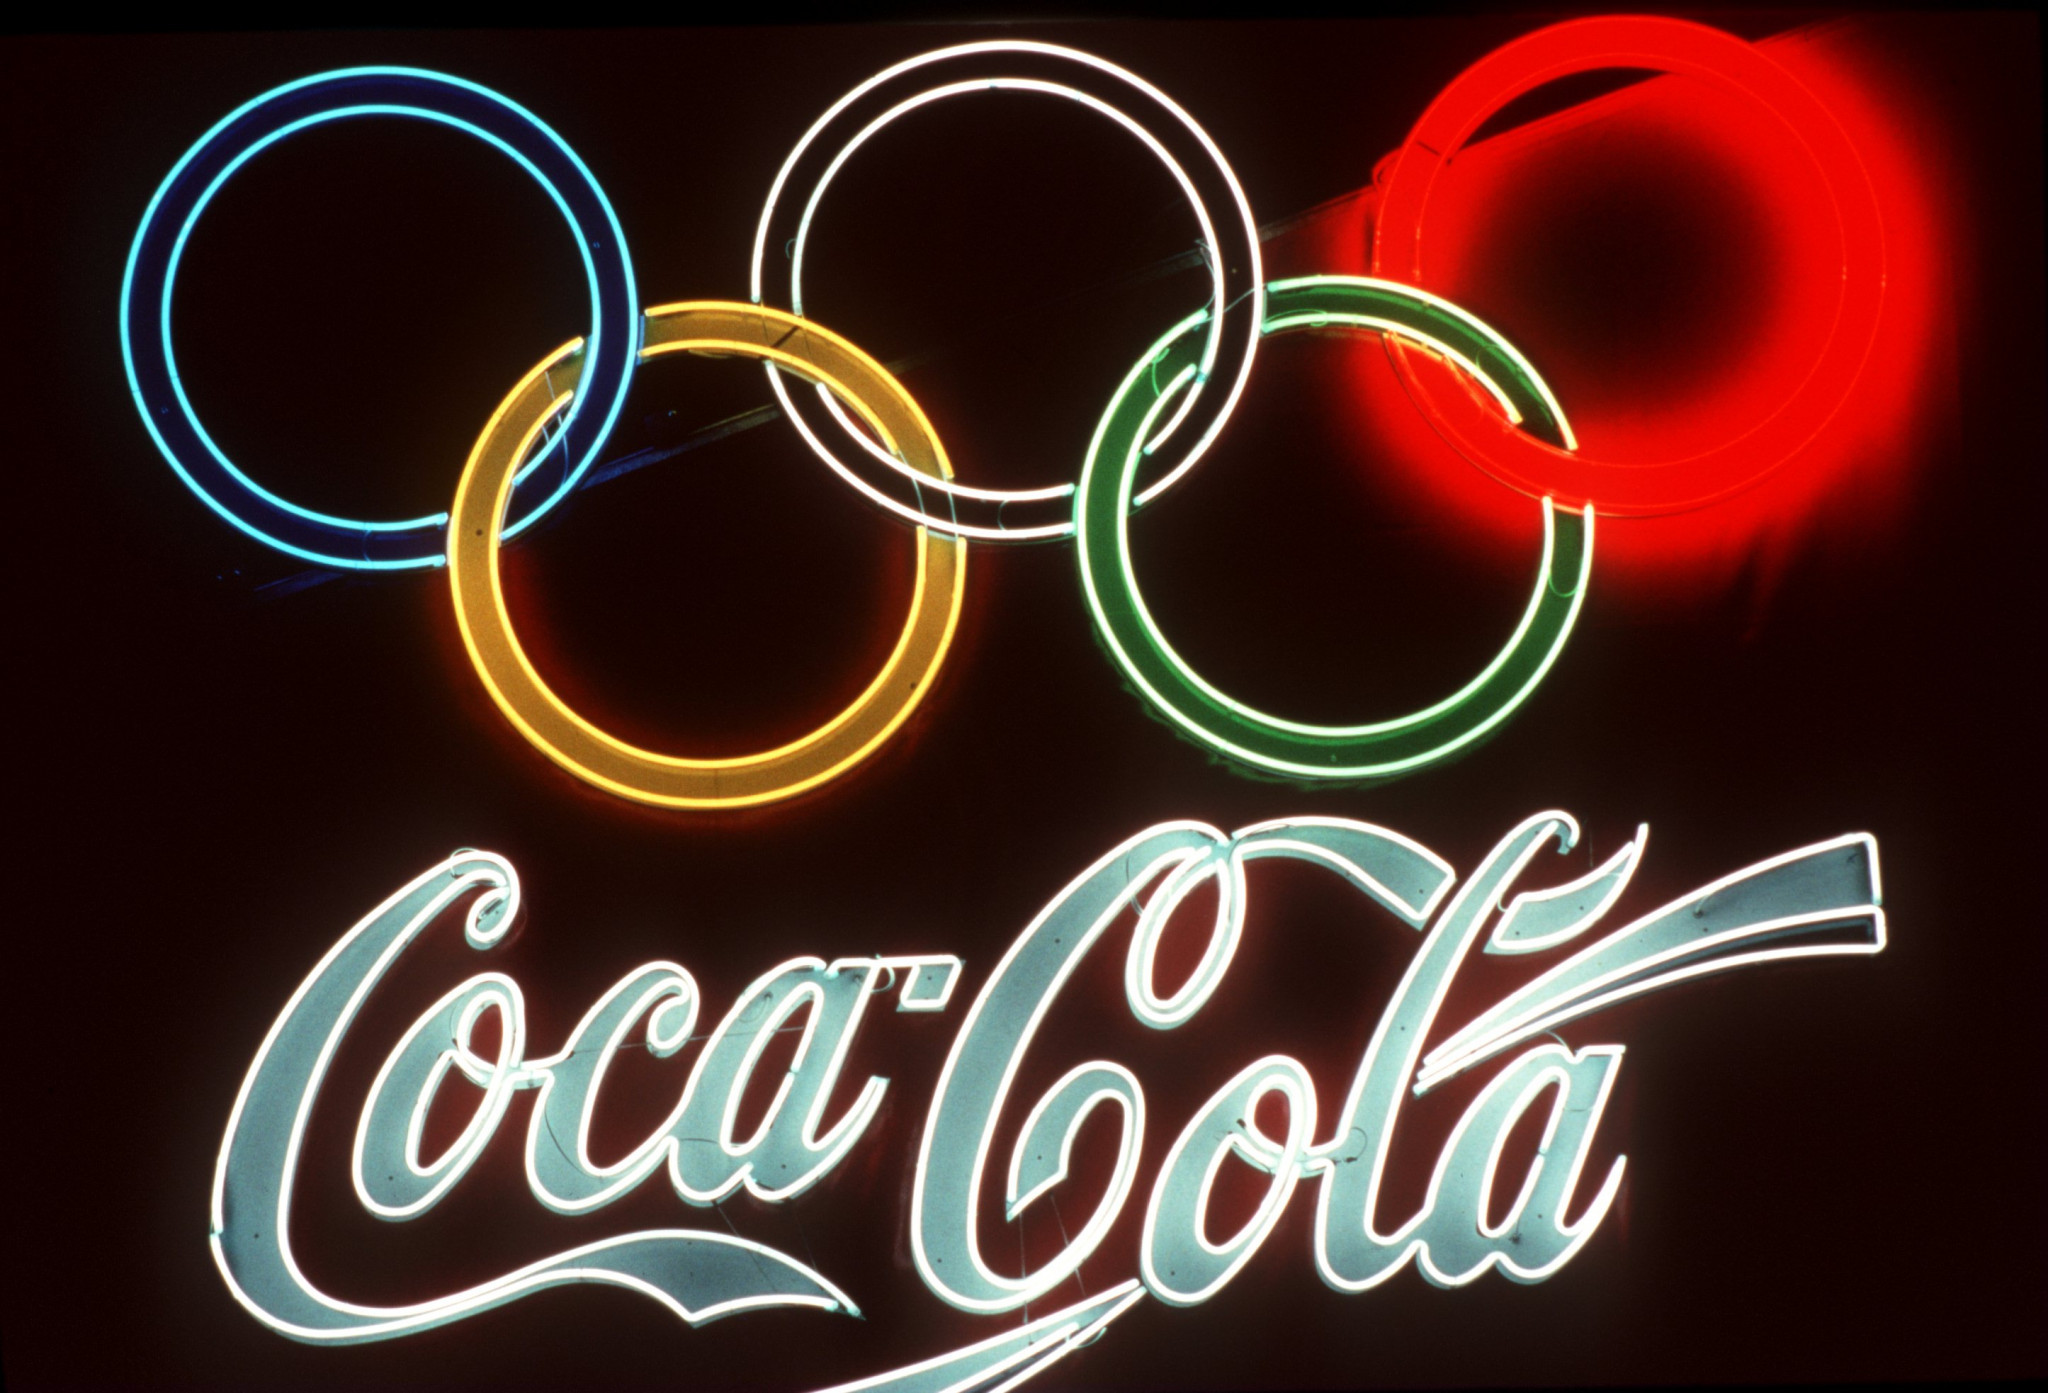 Coca-Cola, the Olympic Movement's oldest sponsor, has announced a decline in revenues ©Getty Images